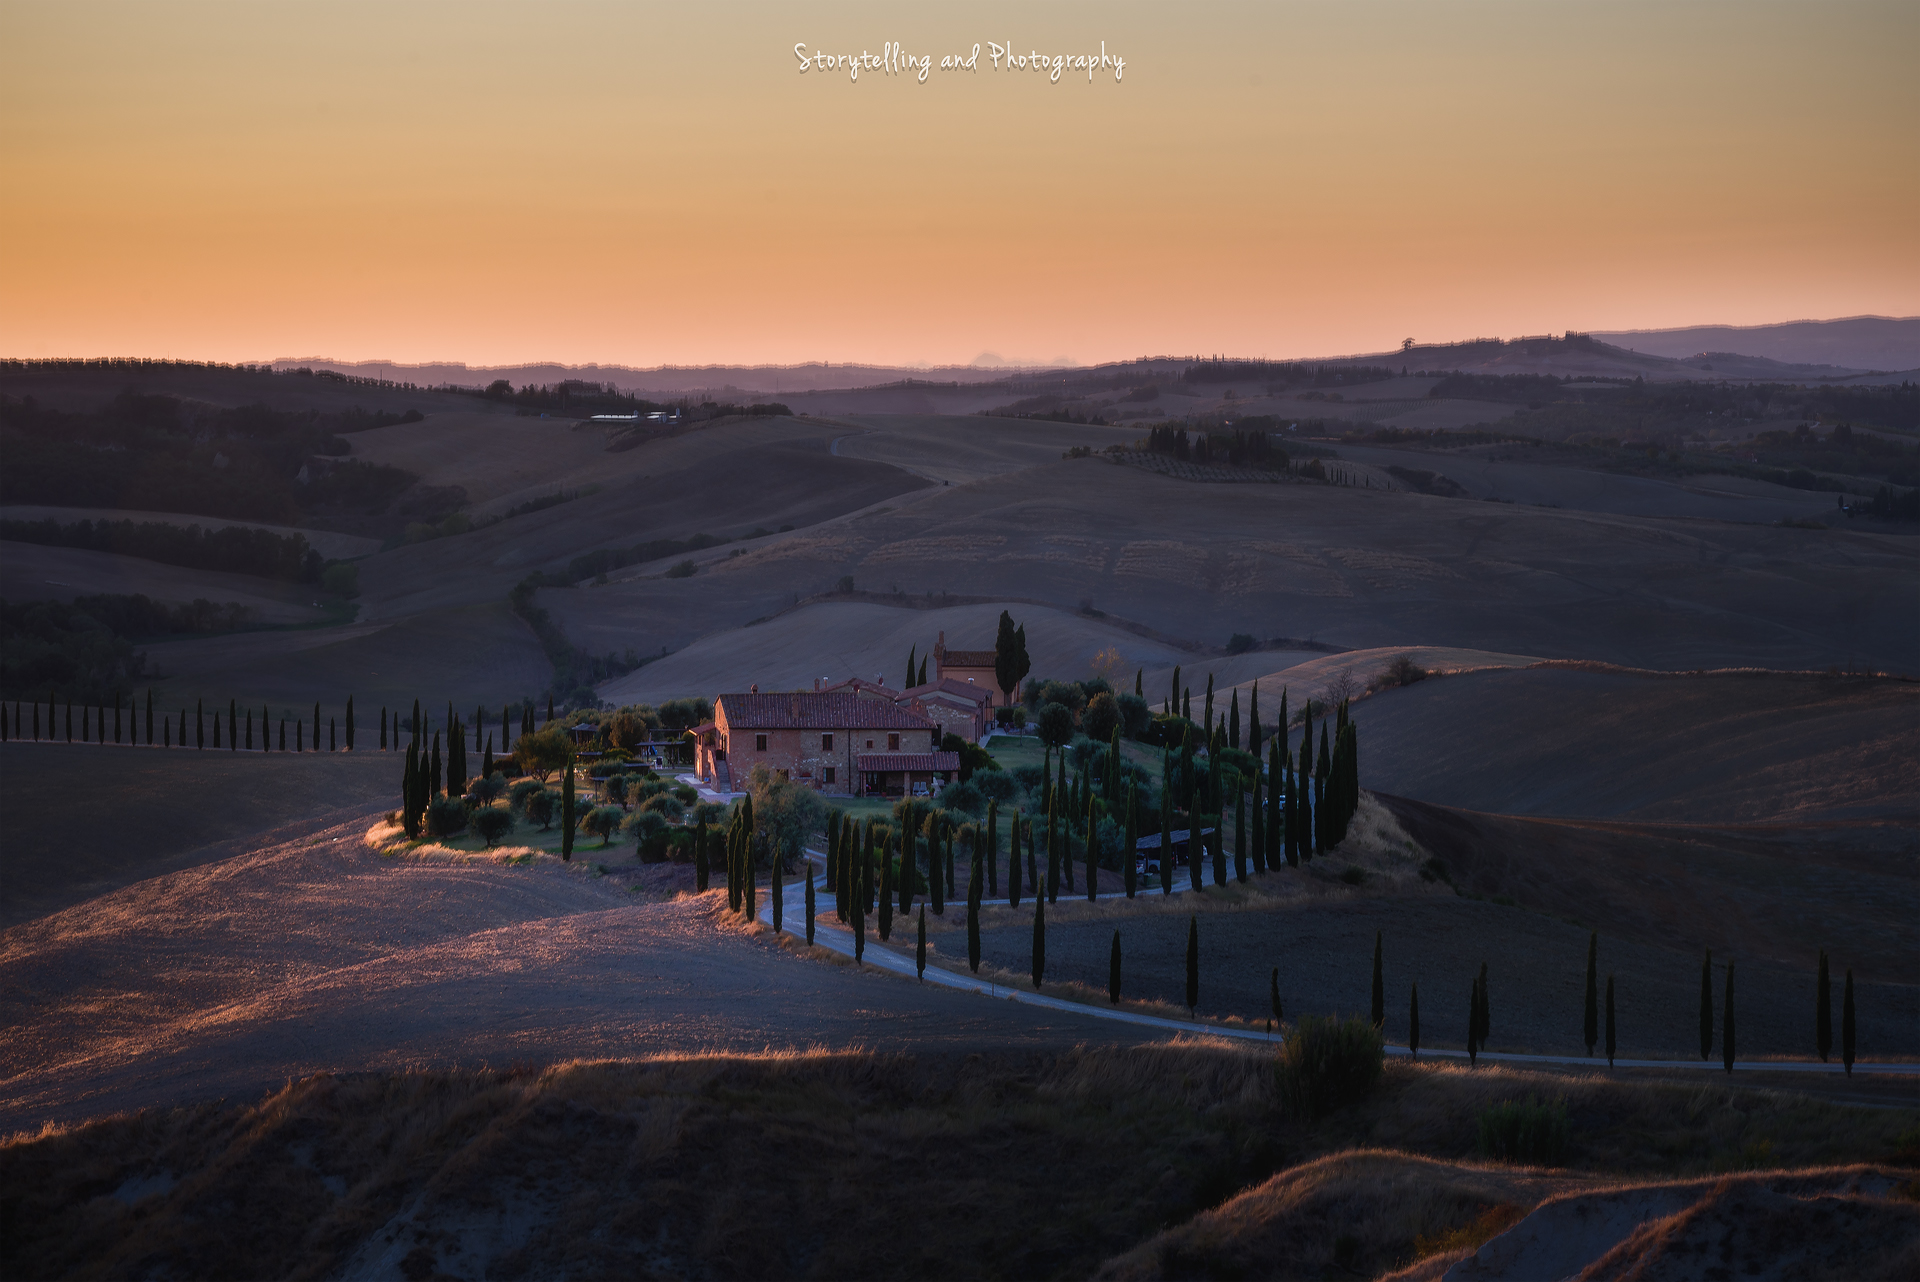 belvedere val d'orcia